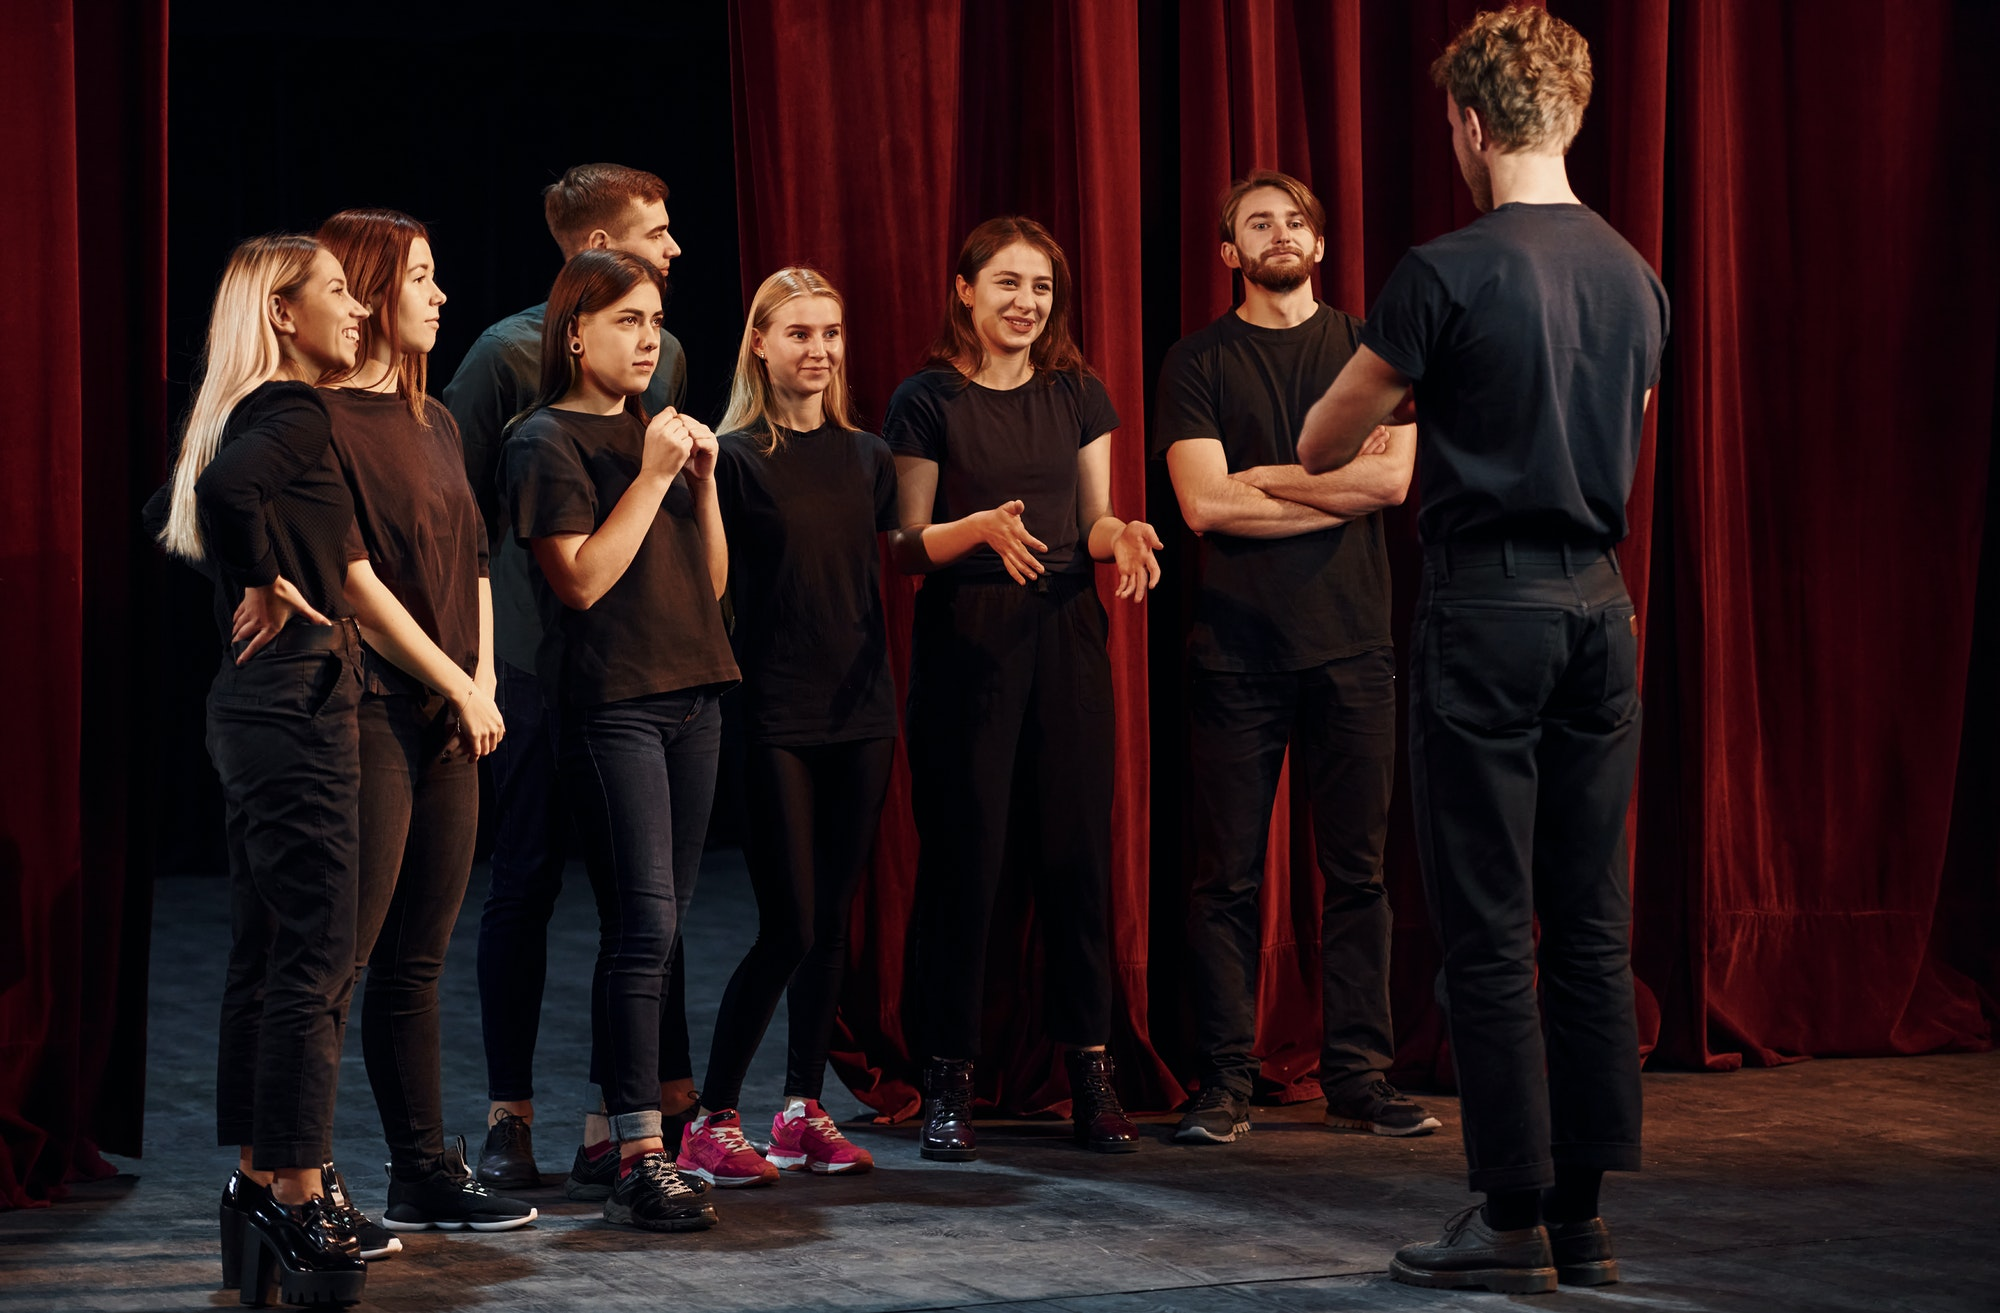 Group of actors in dark colored clothes on rehearsal in the theater